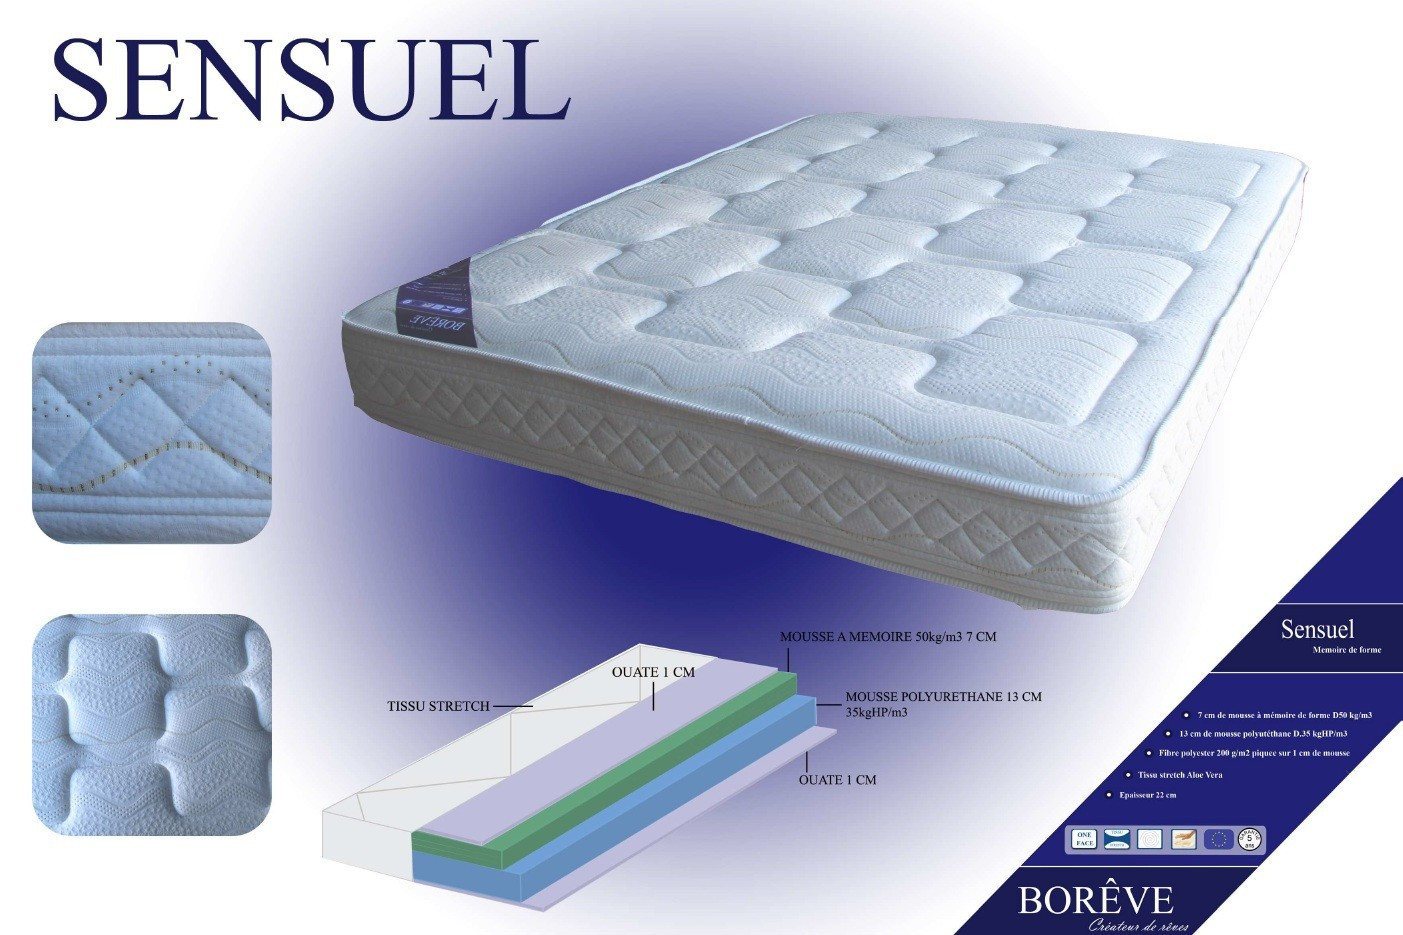 matelas paisseur 35 cm trendy matelas borneo x mmoire de forme cm paisseur cm de mousse with. Black Bedroom Furniture Sets. Home Design Ideas